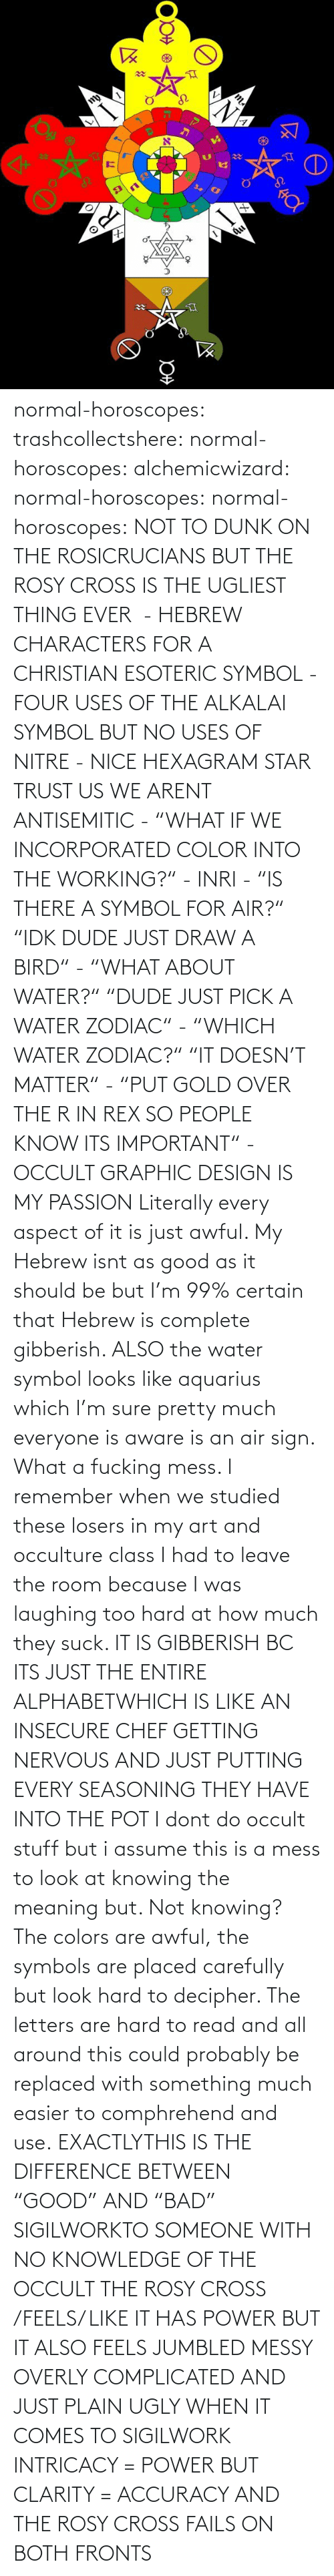 "Arent: normal-horoscopes:  trashcollectshere: normal-horoscopes:   alchemicwizard:  normal-horoscopes:  normal-horoscopes: NOT TO DUNK ON THE ROSICRUCIANS BUT THE ROSY CROSS IS THE UGLIEST THING EVER  - HEBREW CHARACTERS FOR A CHRISTIAN ESOTERIC SYMBOL - FOUR USES OF THE ALKALAI SYMBOL BUT NO USES OF NITRE - NICE HEXAGRAM STAR TRUST US WE ARENT ANTISEMITIC - ""WHAT IF WE INCORPORATED COLOR INTO THE WORKING?"" - INRI - ""IS THERE A SYMBOL FOR AIR?"" ""IDK DUDE JUST DRAW A BIRD"" - ""WHAT ABOUT WATER?"" ""DUDE JUST PICK A WATER ZODIAC"" - ""WHICH WATER ZODIAC?"" ""IT DOESN'T MATTER"" - ""PUT GOLD OVER THE R IN REX SO PEOPLE KNOW ITS IMPORTANT"" - OCCULT GRAPHIC DESIGN IS MY PASSION  Literally every aspect of it is just awful. My Hebrew isnt as good as it should be but I'm 99% certain that Hebrew is complete gibberish.  ALSO the water symbol looks like aquarius which I'm sure pretty much everyone is aware is an air sign. What a fucking mess.  I remember when we studied these losers in my art and occulture class I had to leave the room because I was laughing too hard at how much they suck.   IT IS GIBBERISH BC ITS JUST THE ENTIRE ALPHABETWHICH IS LIKE AN INSECURE CHEF GETTING NERVOUS AND JUST PUTTING EVERY SEASONING THEY HAVE INTO THE POT     I dont do occult stuff but i assume this is a mess to look at knowing the meaning but. Not knowing? The colors are awful, the symbols are placed carefully but look hard to decipher. The letters are hard to read and all around this could probably be replaced with something much easier to comphrehend and use.  EXACTLYTHIS IS THE DIFFERENCE BETWEEN ""GOOD"" AND ""BAD"" SIGILWORKTO SOMEONE WITH NO KNOWLEDGE OF THE OCCULT THE ROSY CROSS /FEELS/ LIKE IT HAS POWER BUT IT ALSO FEELS JUMBLED MESSY OVERLY COMPLICATED AND JUST PLAIN UGLY WHEN IT COMES TO SIGILWORK INTRICACY = POWER BUT CLARITY = ACCURACY AND THE ROSY CROSS FAILS ON BOTH FRONTS"